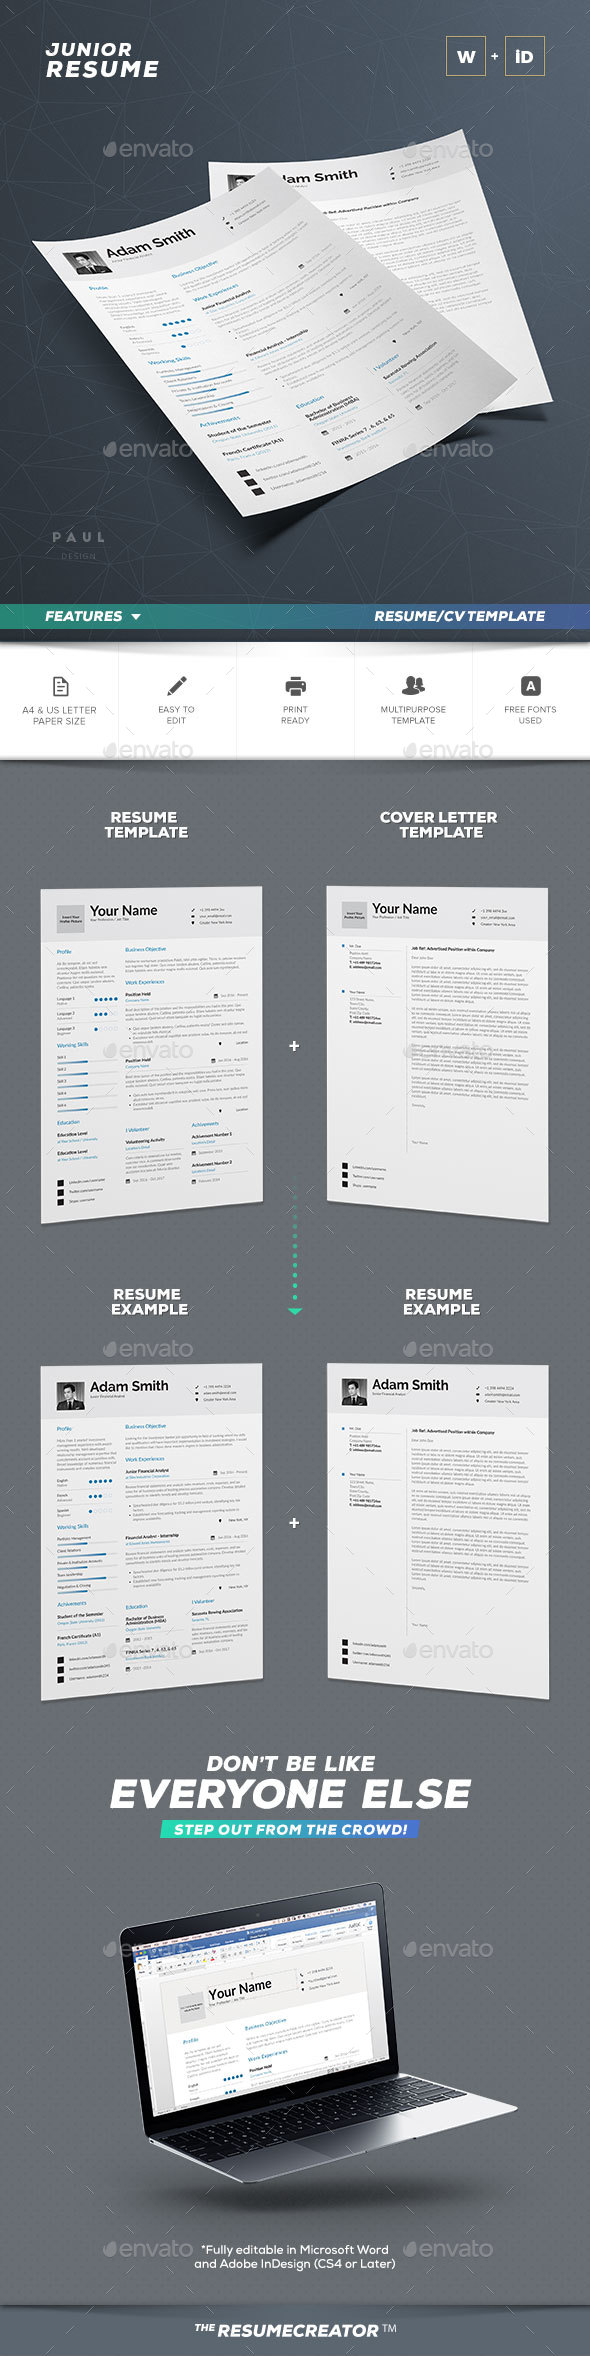 Fine 10 Steps To Creating A Resume Tiny 100 Best Resume Words Square 12 Column Grid Template 13th Birthday Invitation Templates Old 2003 Excel Templates Gray2015 February Calendar Template Resume Templates From GraphicRiver